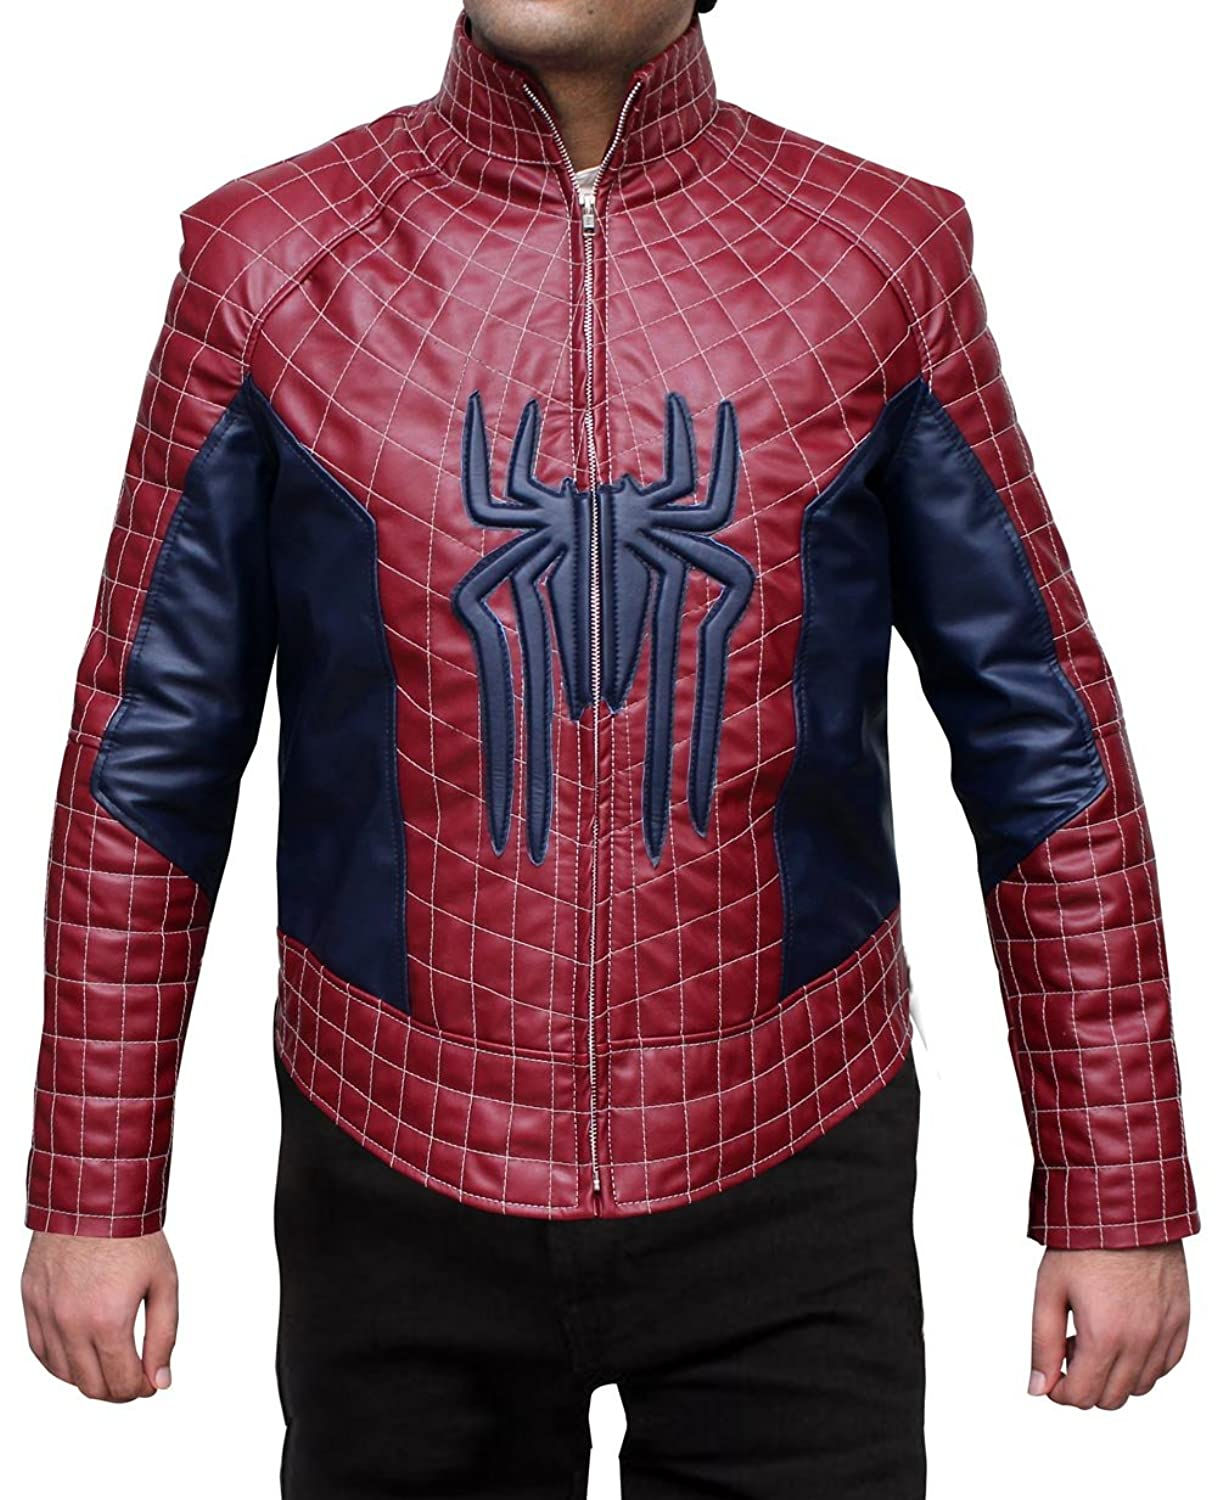 Spiderman Jacket - Red and Black Leather Biker Jacket at Amazon ...